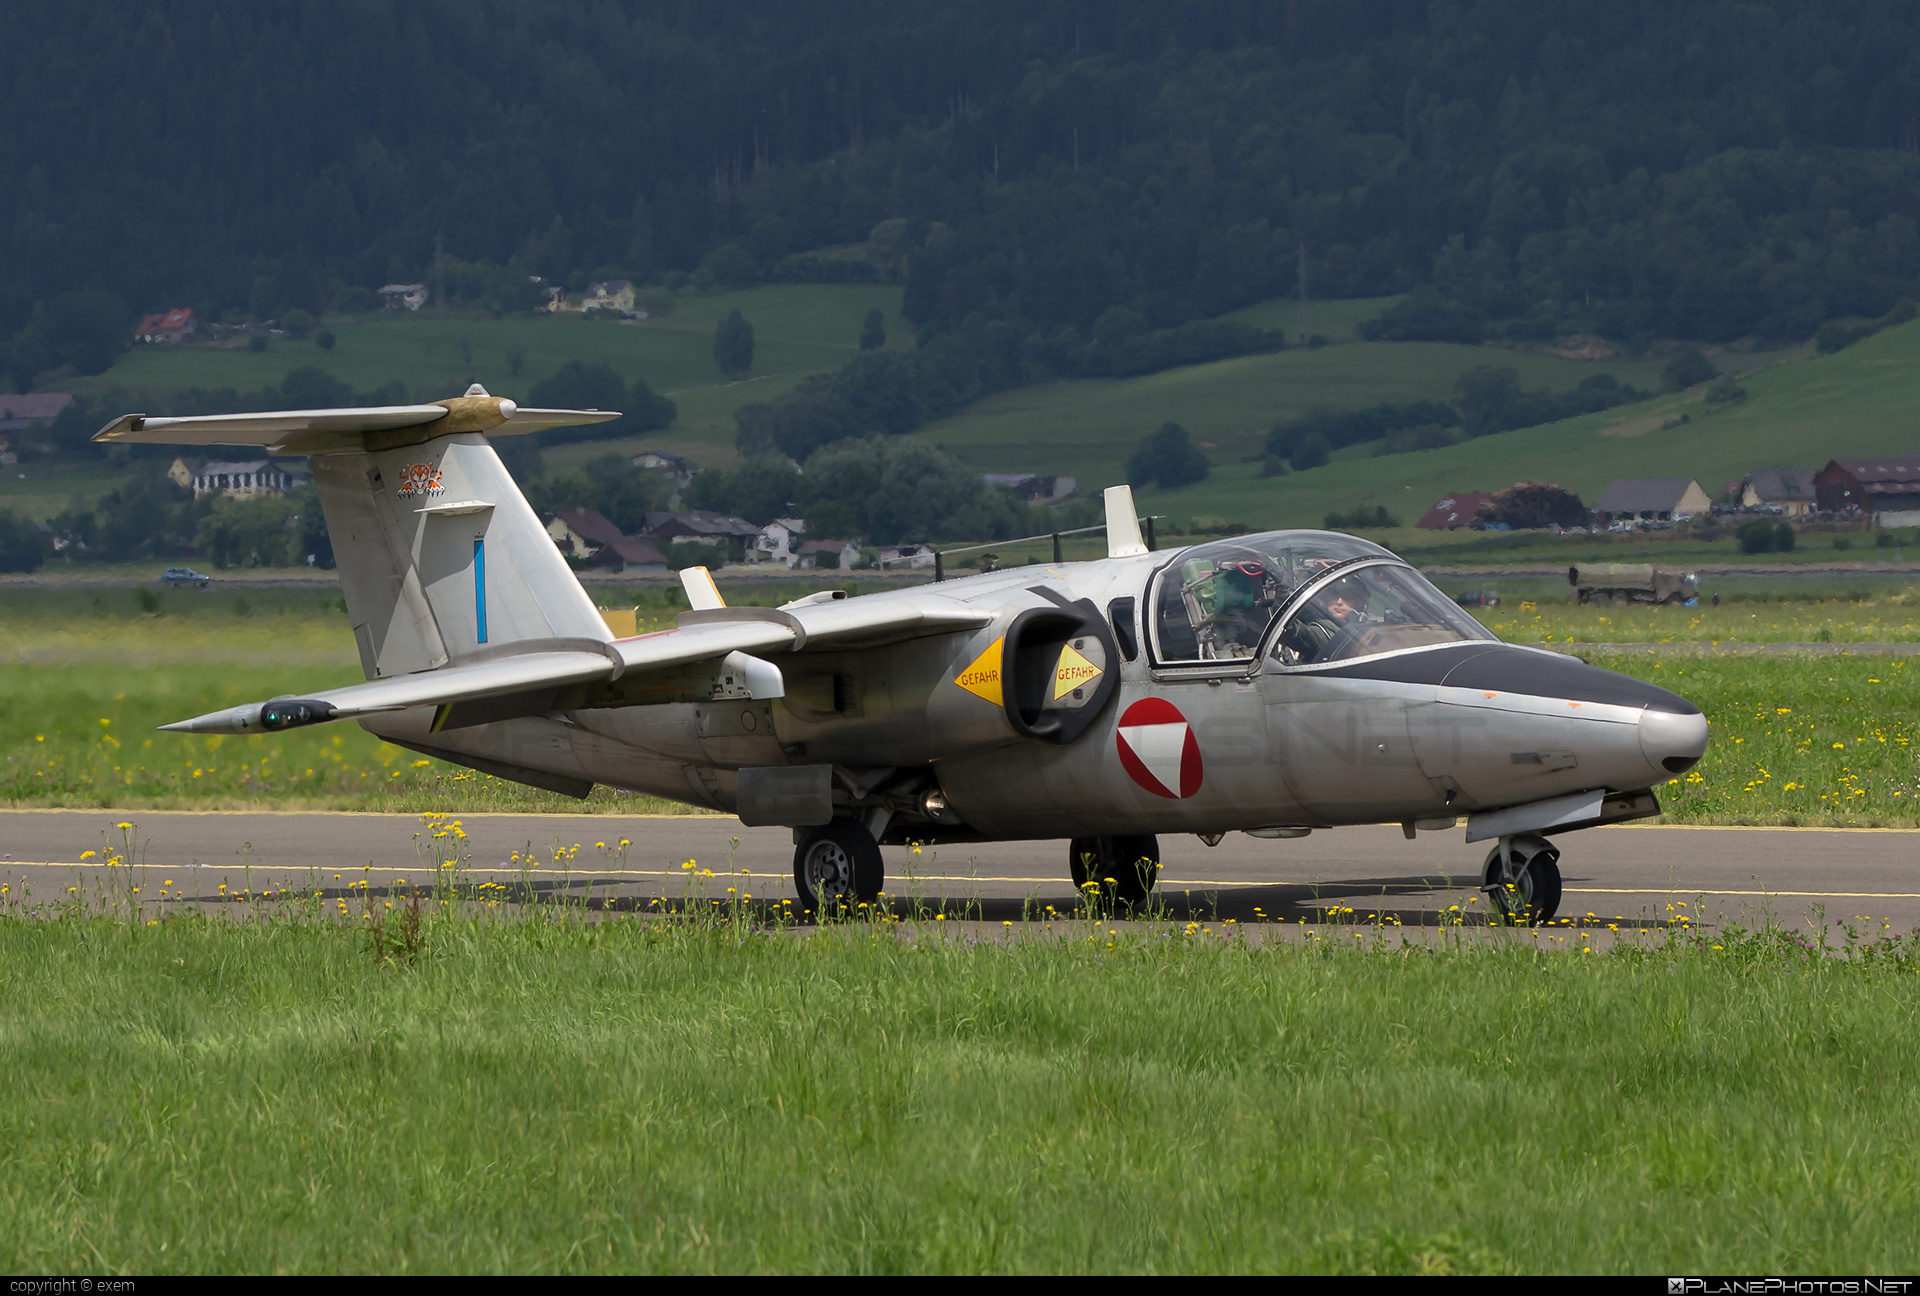 Saab 105OE - BJ-40 operated by Österreichische Luftstreitkräfte (Austrian Air Force) #airpower #airpower2013 #austrianairforce #saab